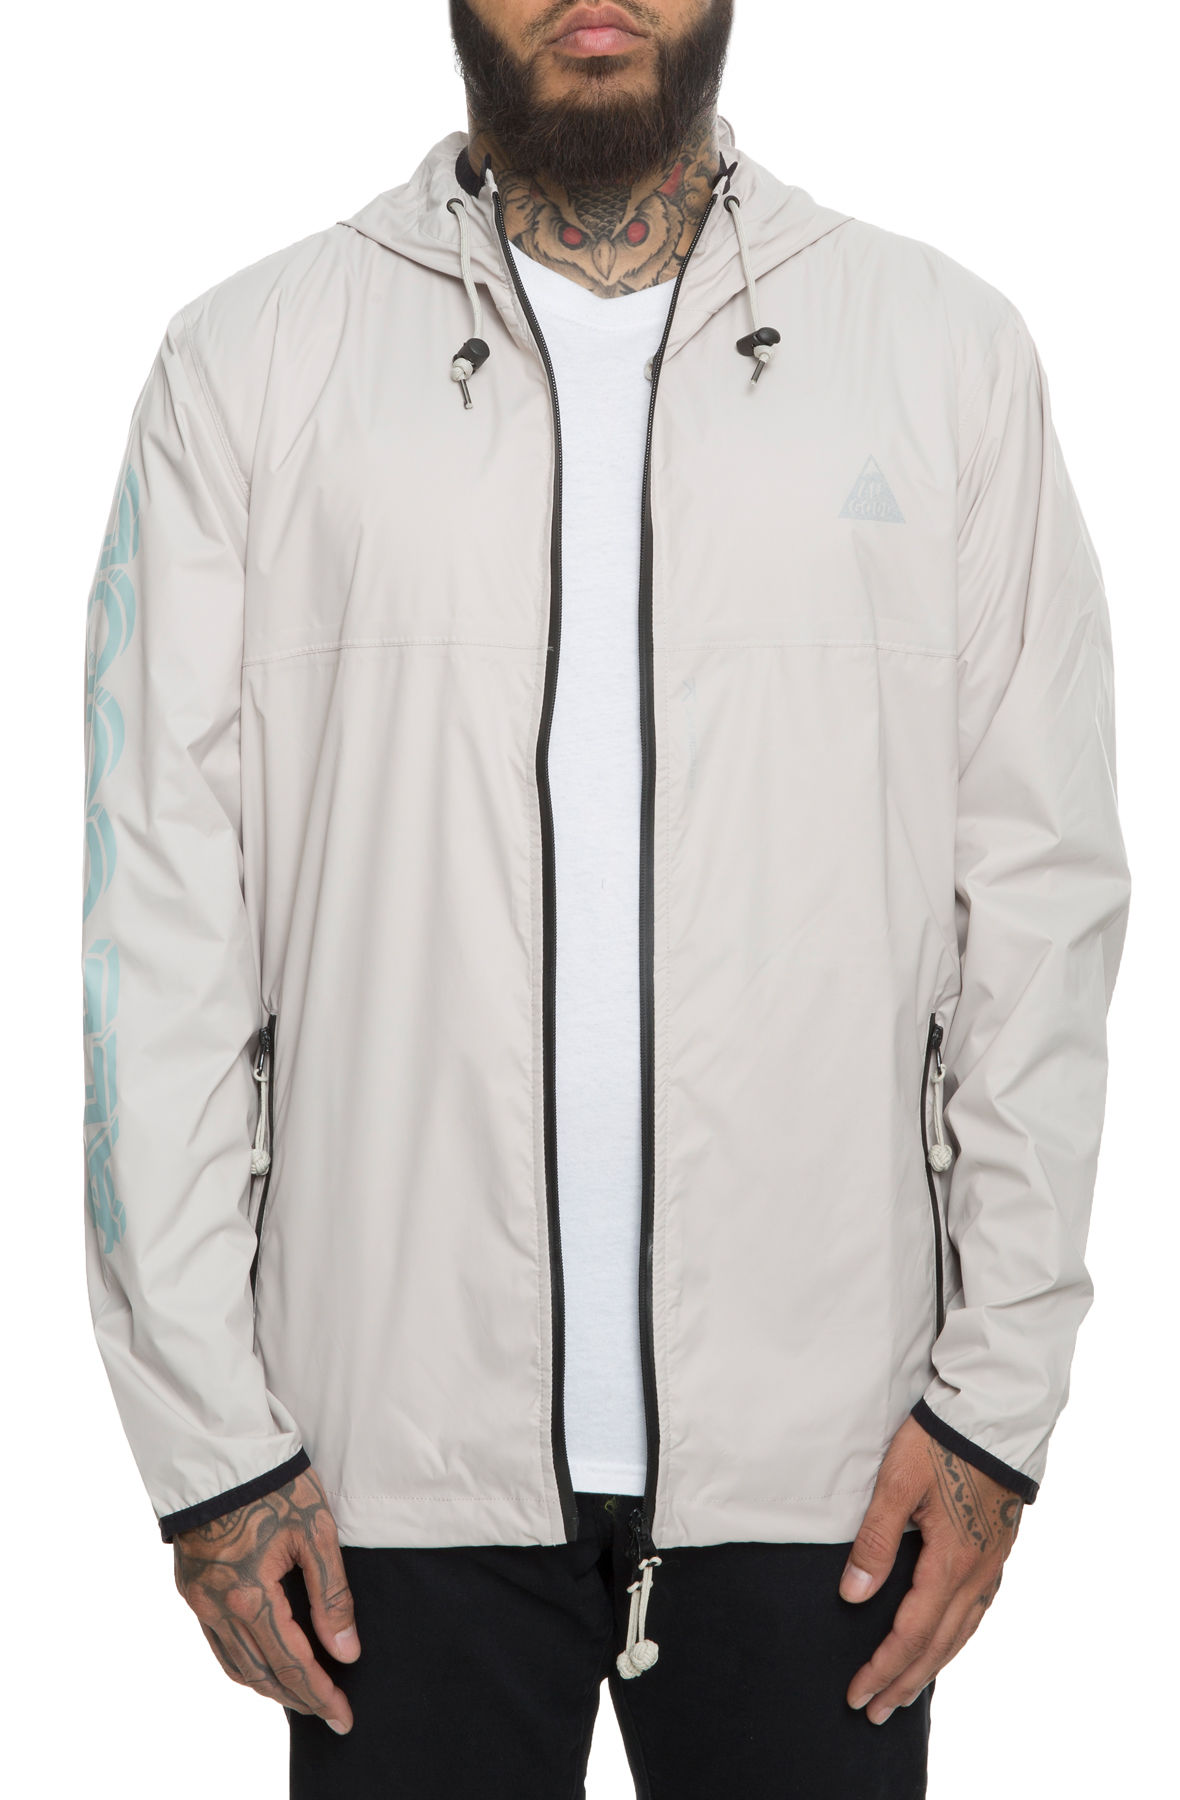 Image of The Jet Setter Descent Jacket in Silver and Mint